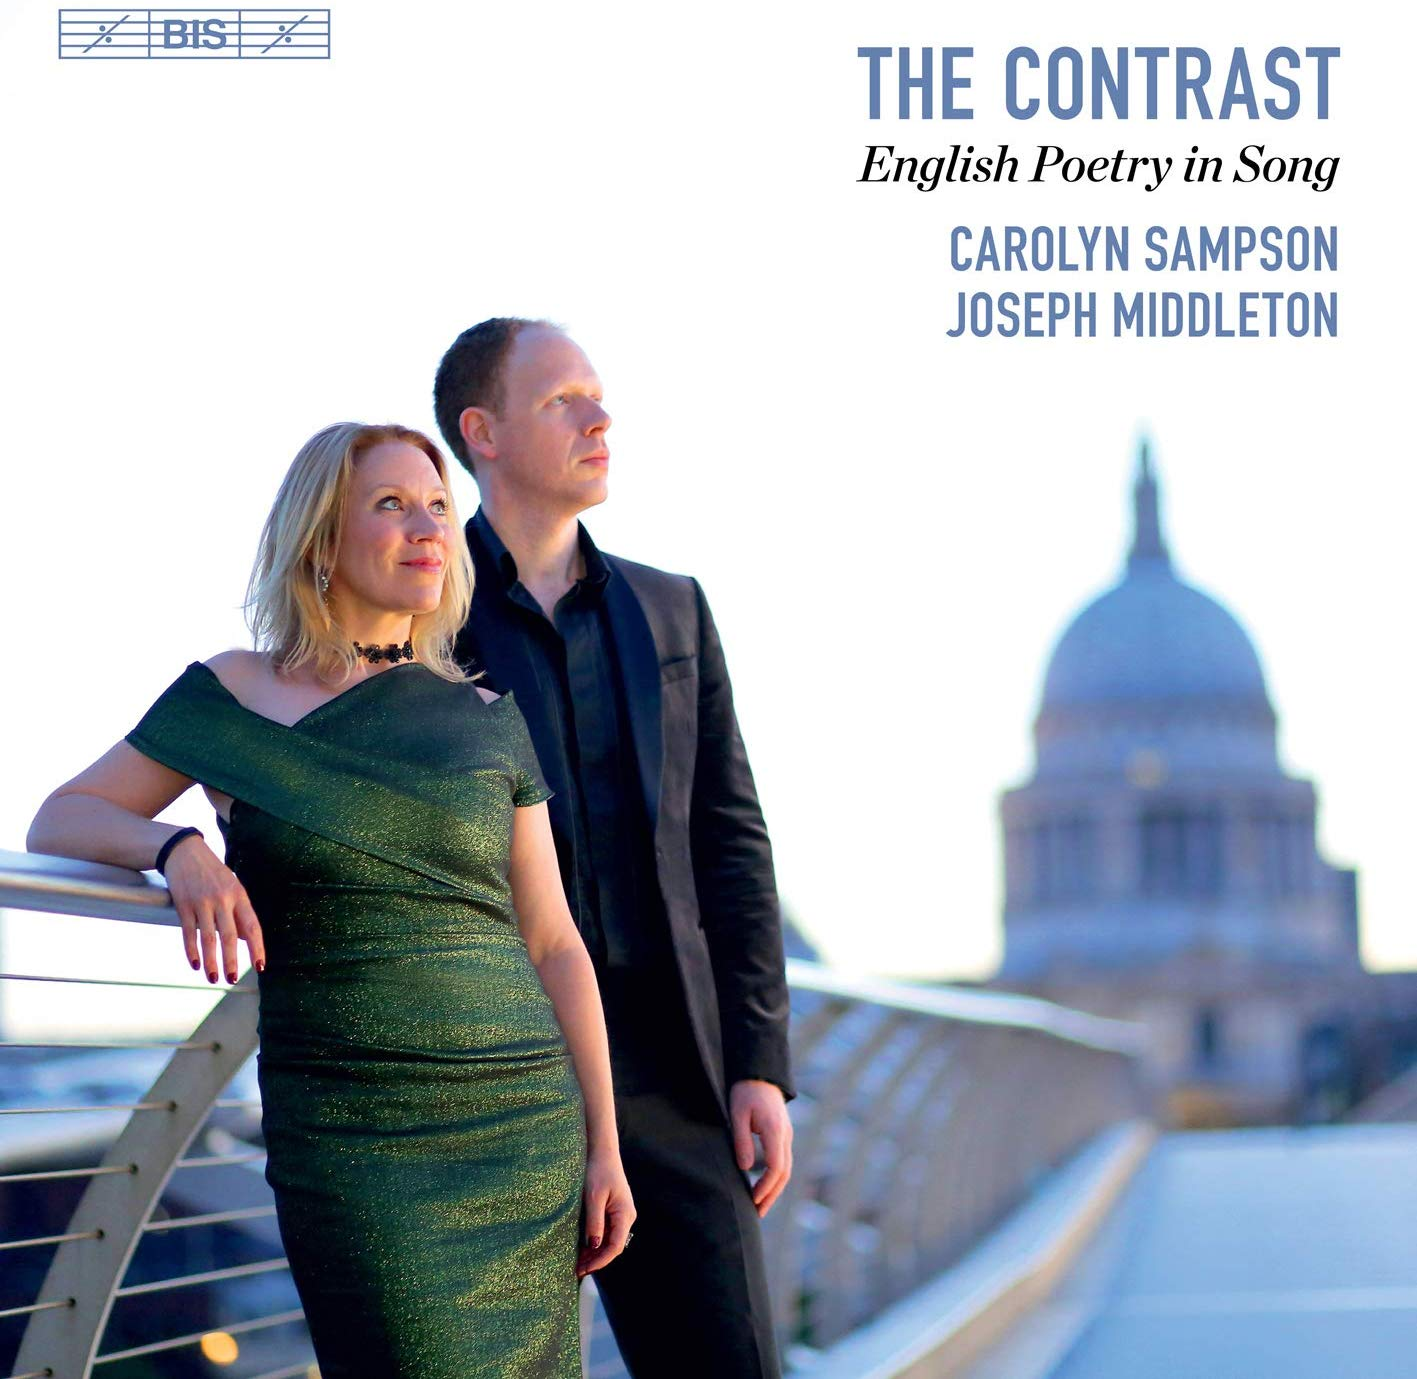 Review of The Contrast: English Poetry in Song